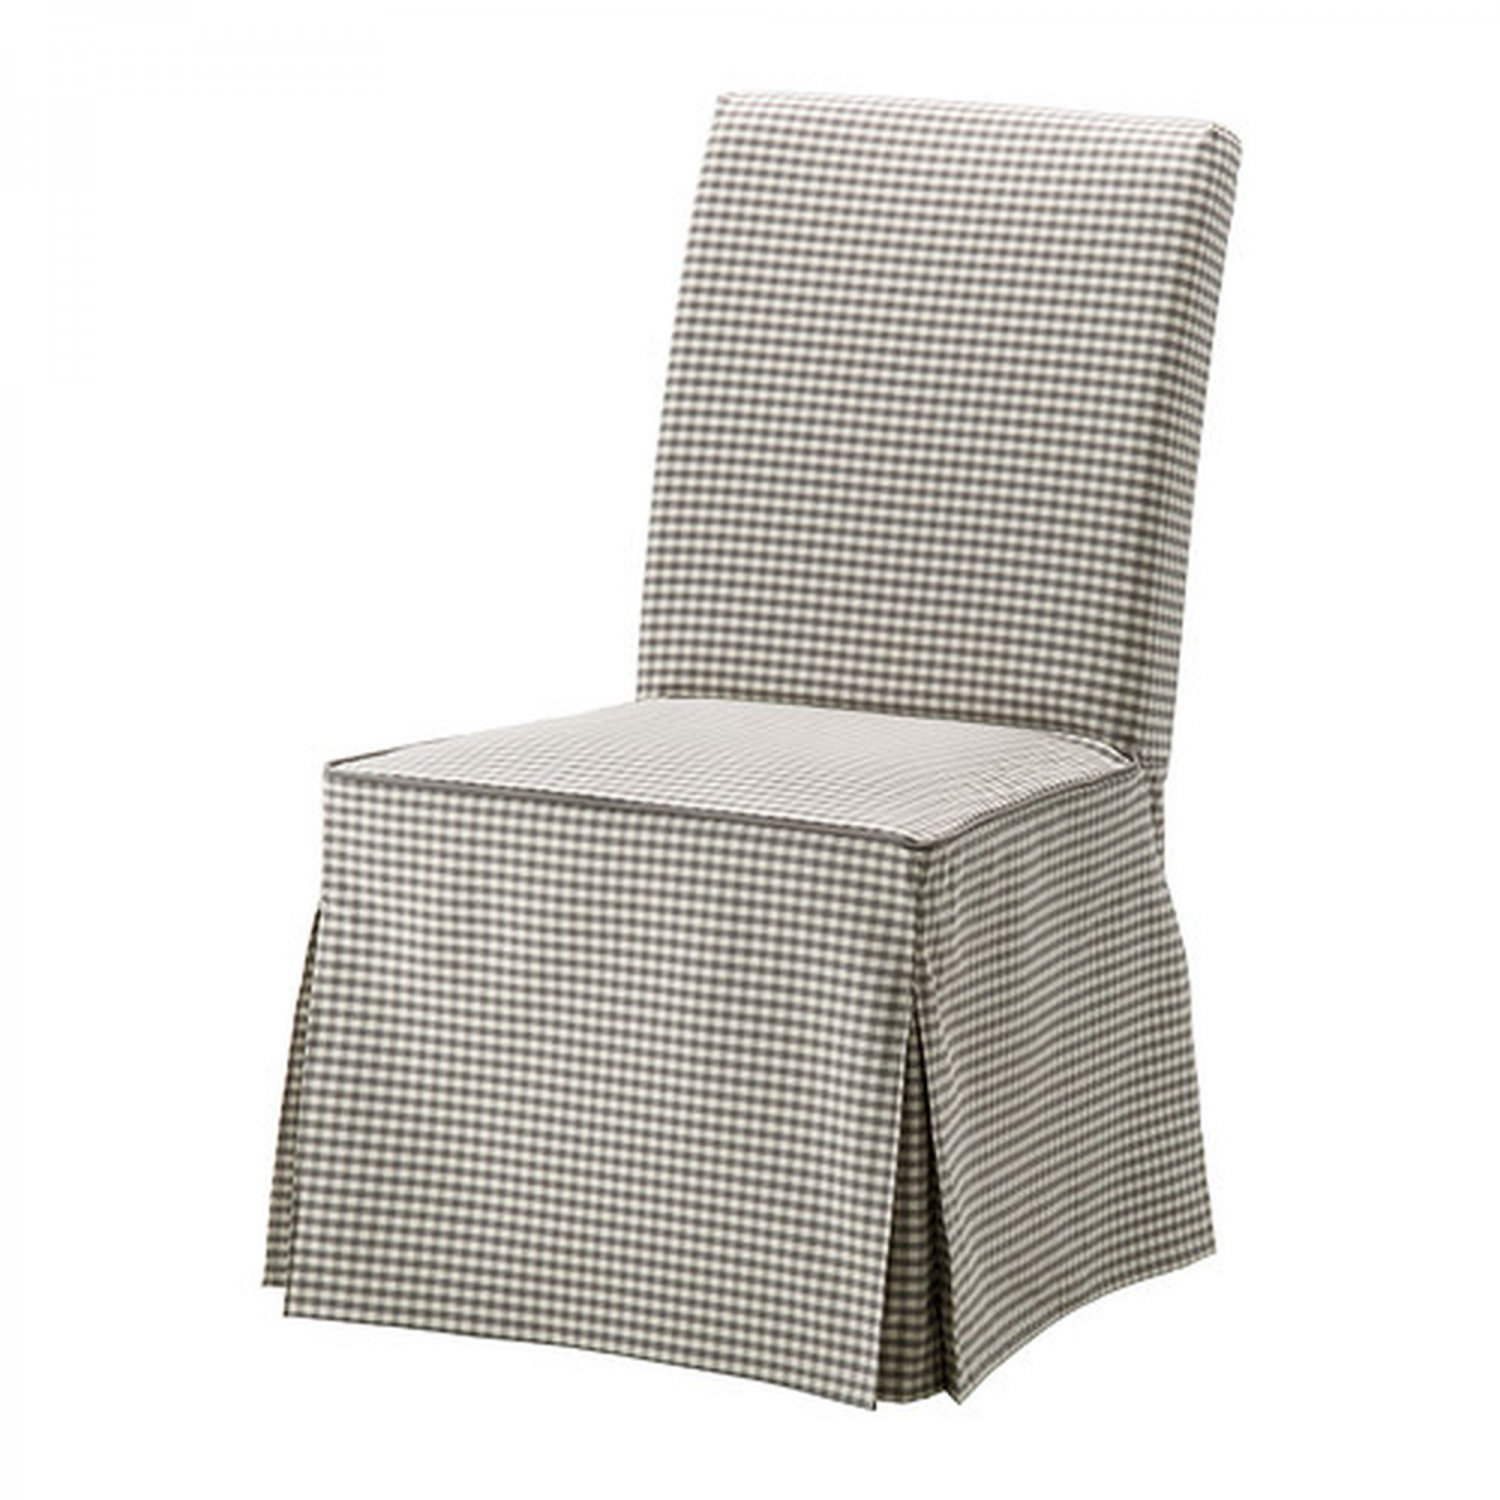 IKEA HENRIKSDAL Chair SLIPCOVER Cover Skirted SAGMYRA Gray White Checked Su00e5gmyra